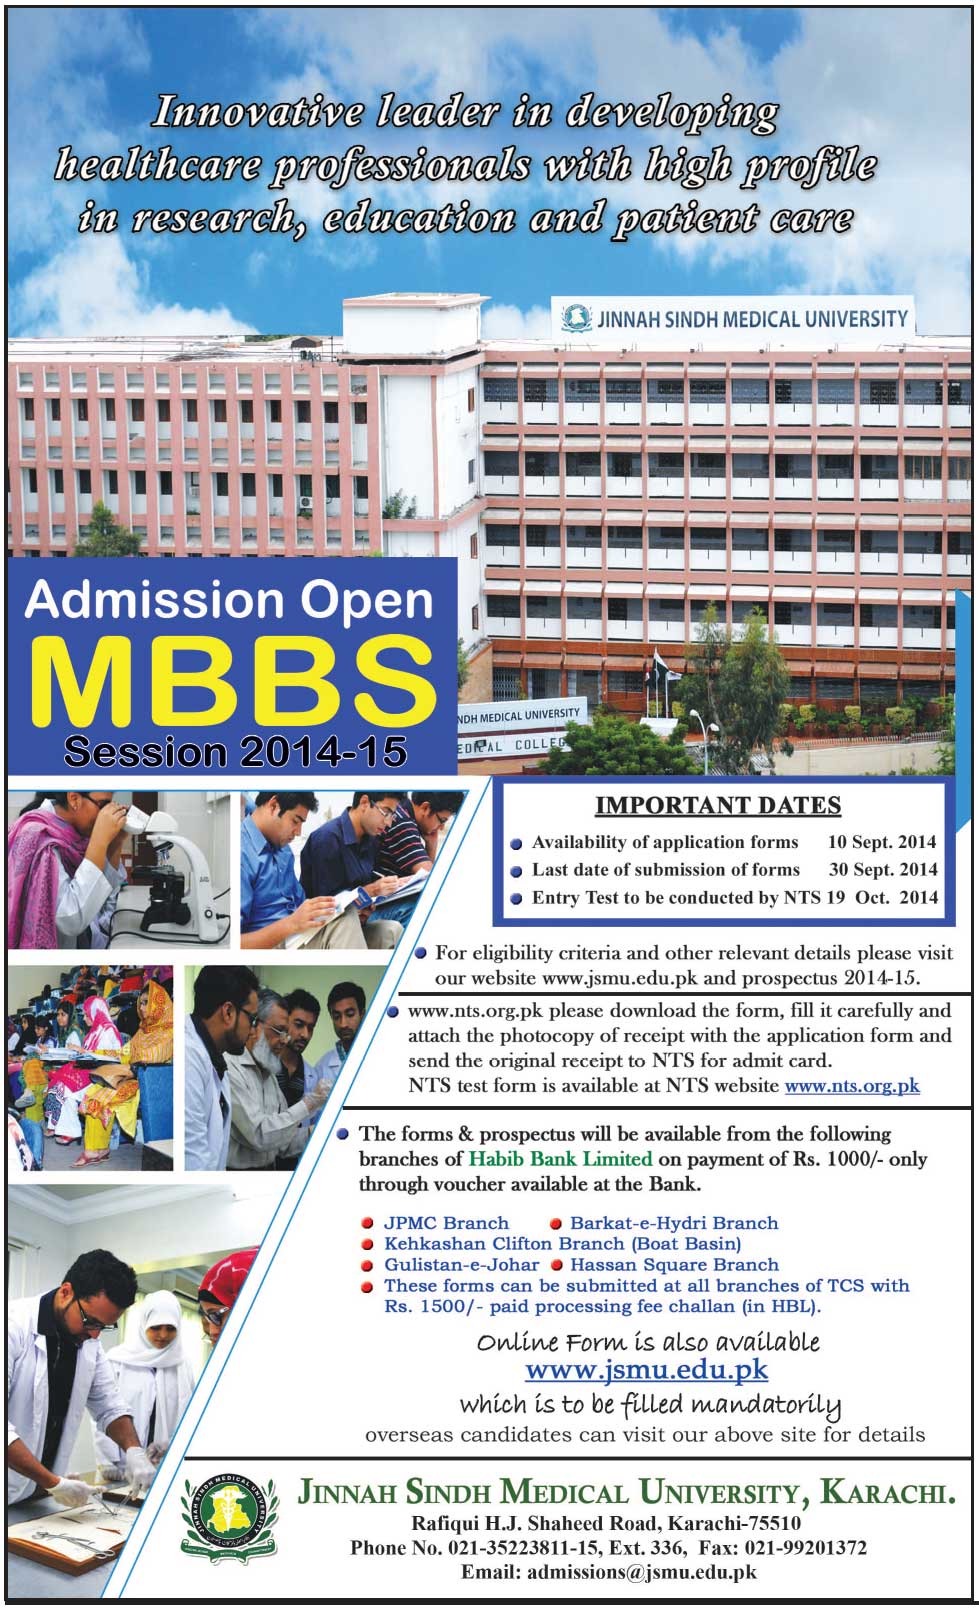 Jinnah Sindh Medical University MBBS Admission 2014-15 NTS Form Date